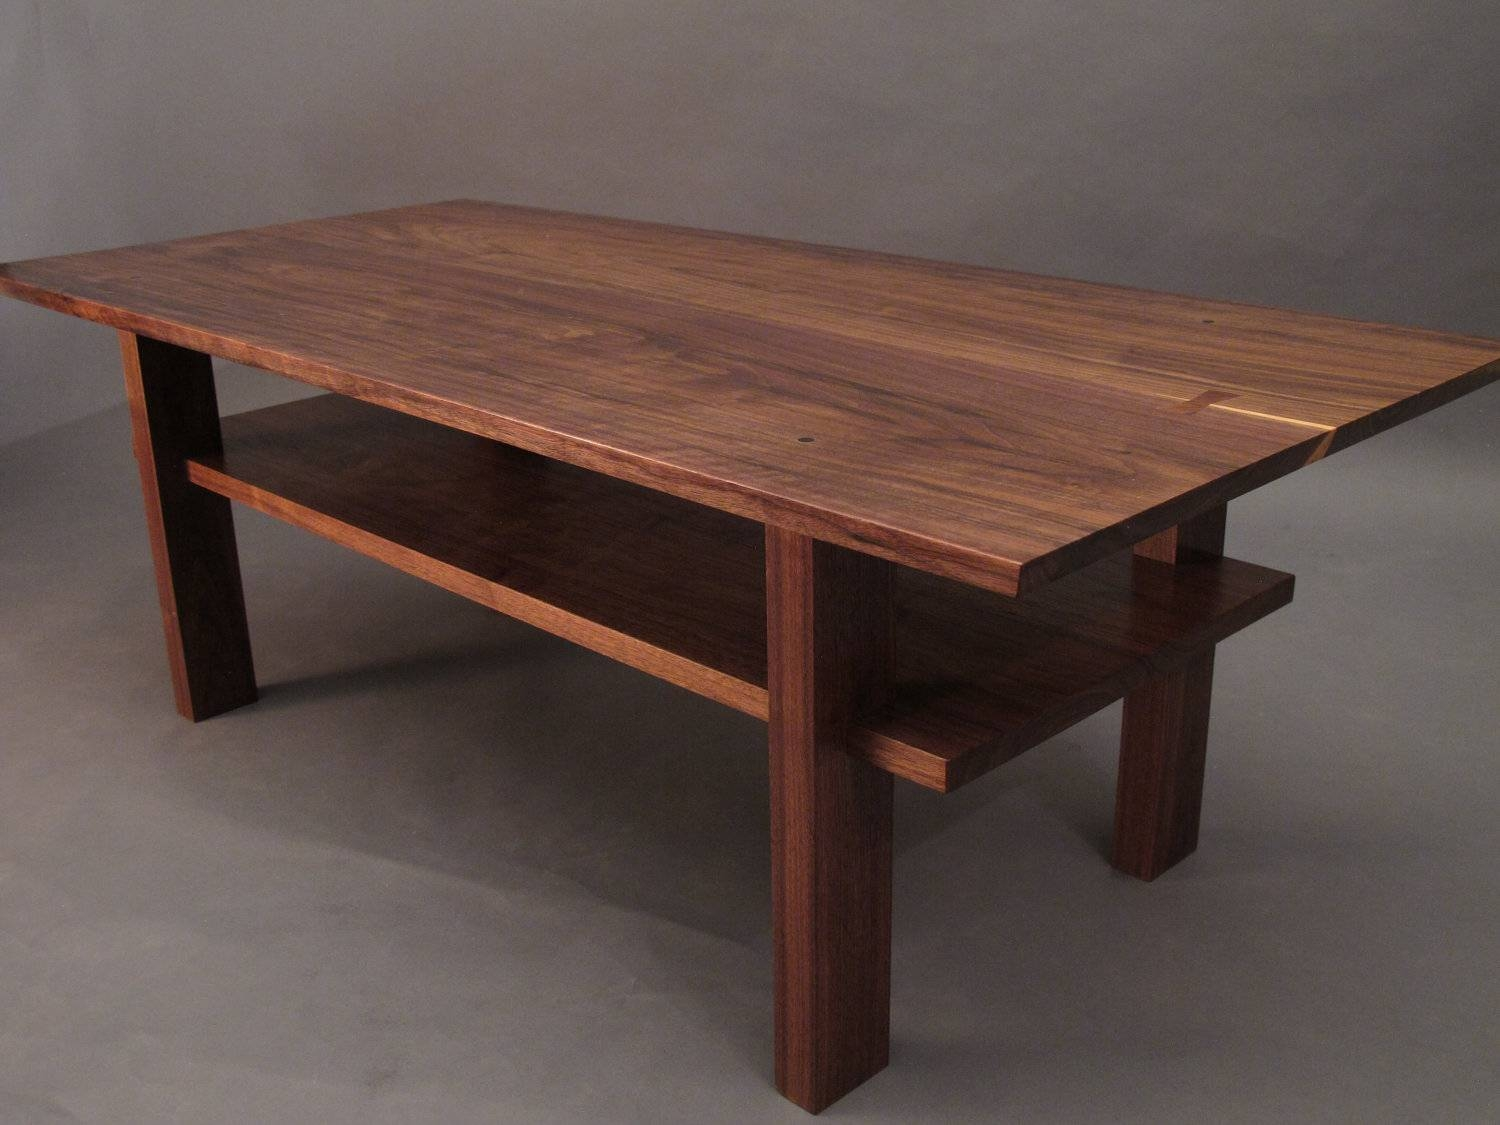 Walnut Coffee Table Small Wood Tables For Living Room Narrow Pertaining To Small Coffee Tables With Shelf (View 30 of 30)